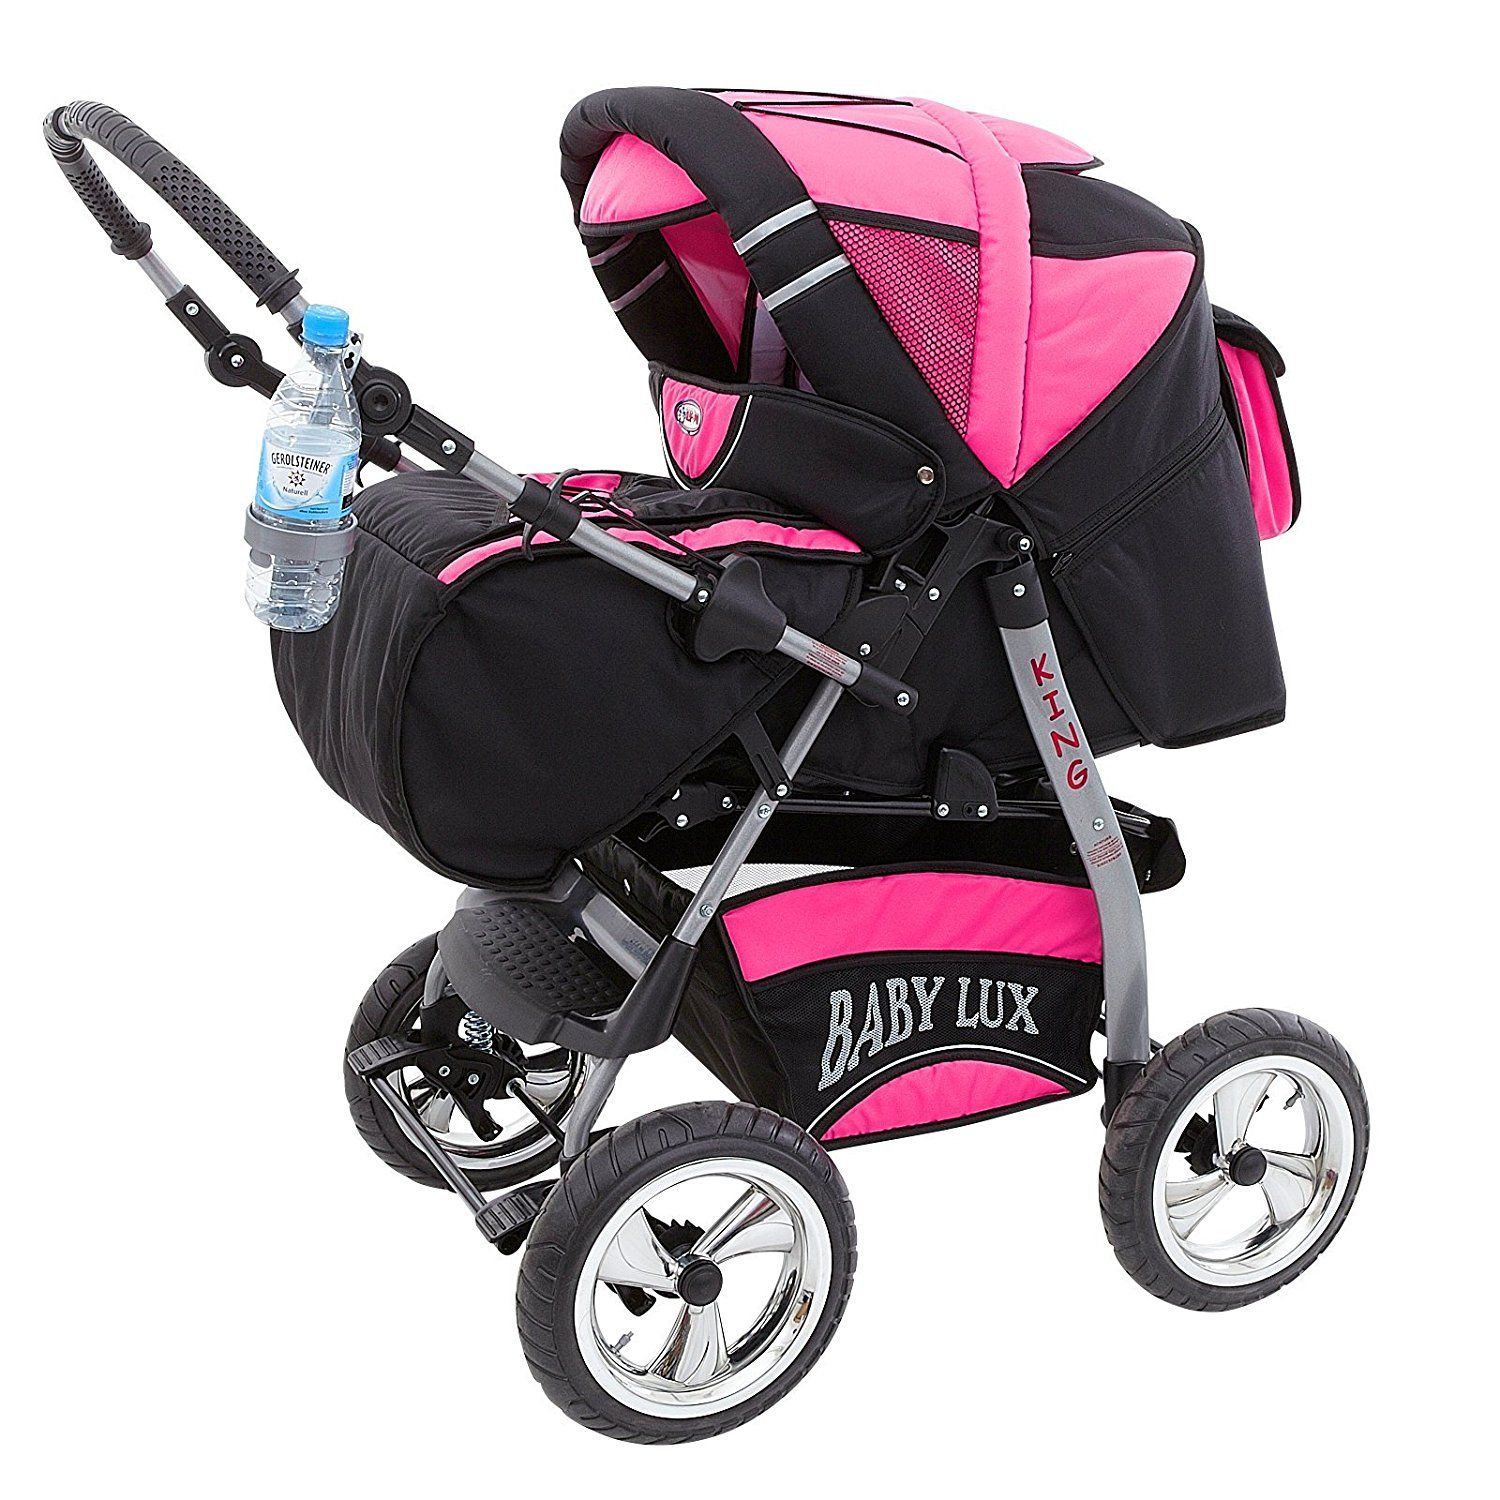 Pin by Babe Clothes on Stroller Pram sets, Baby